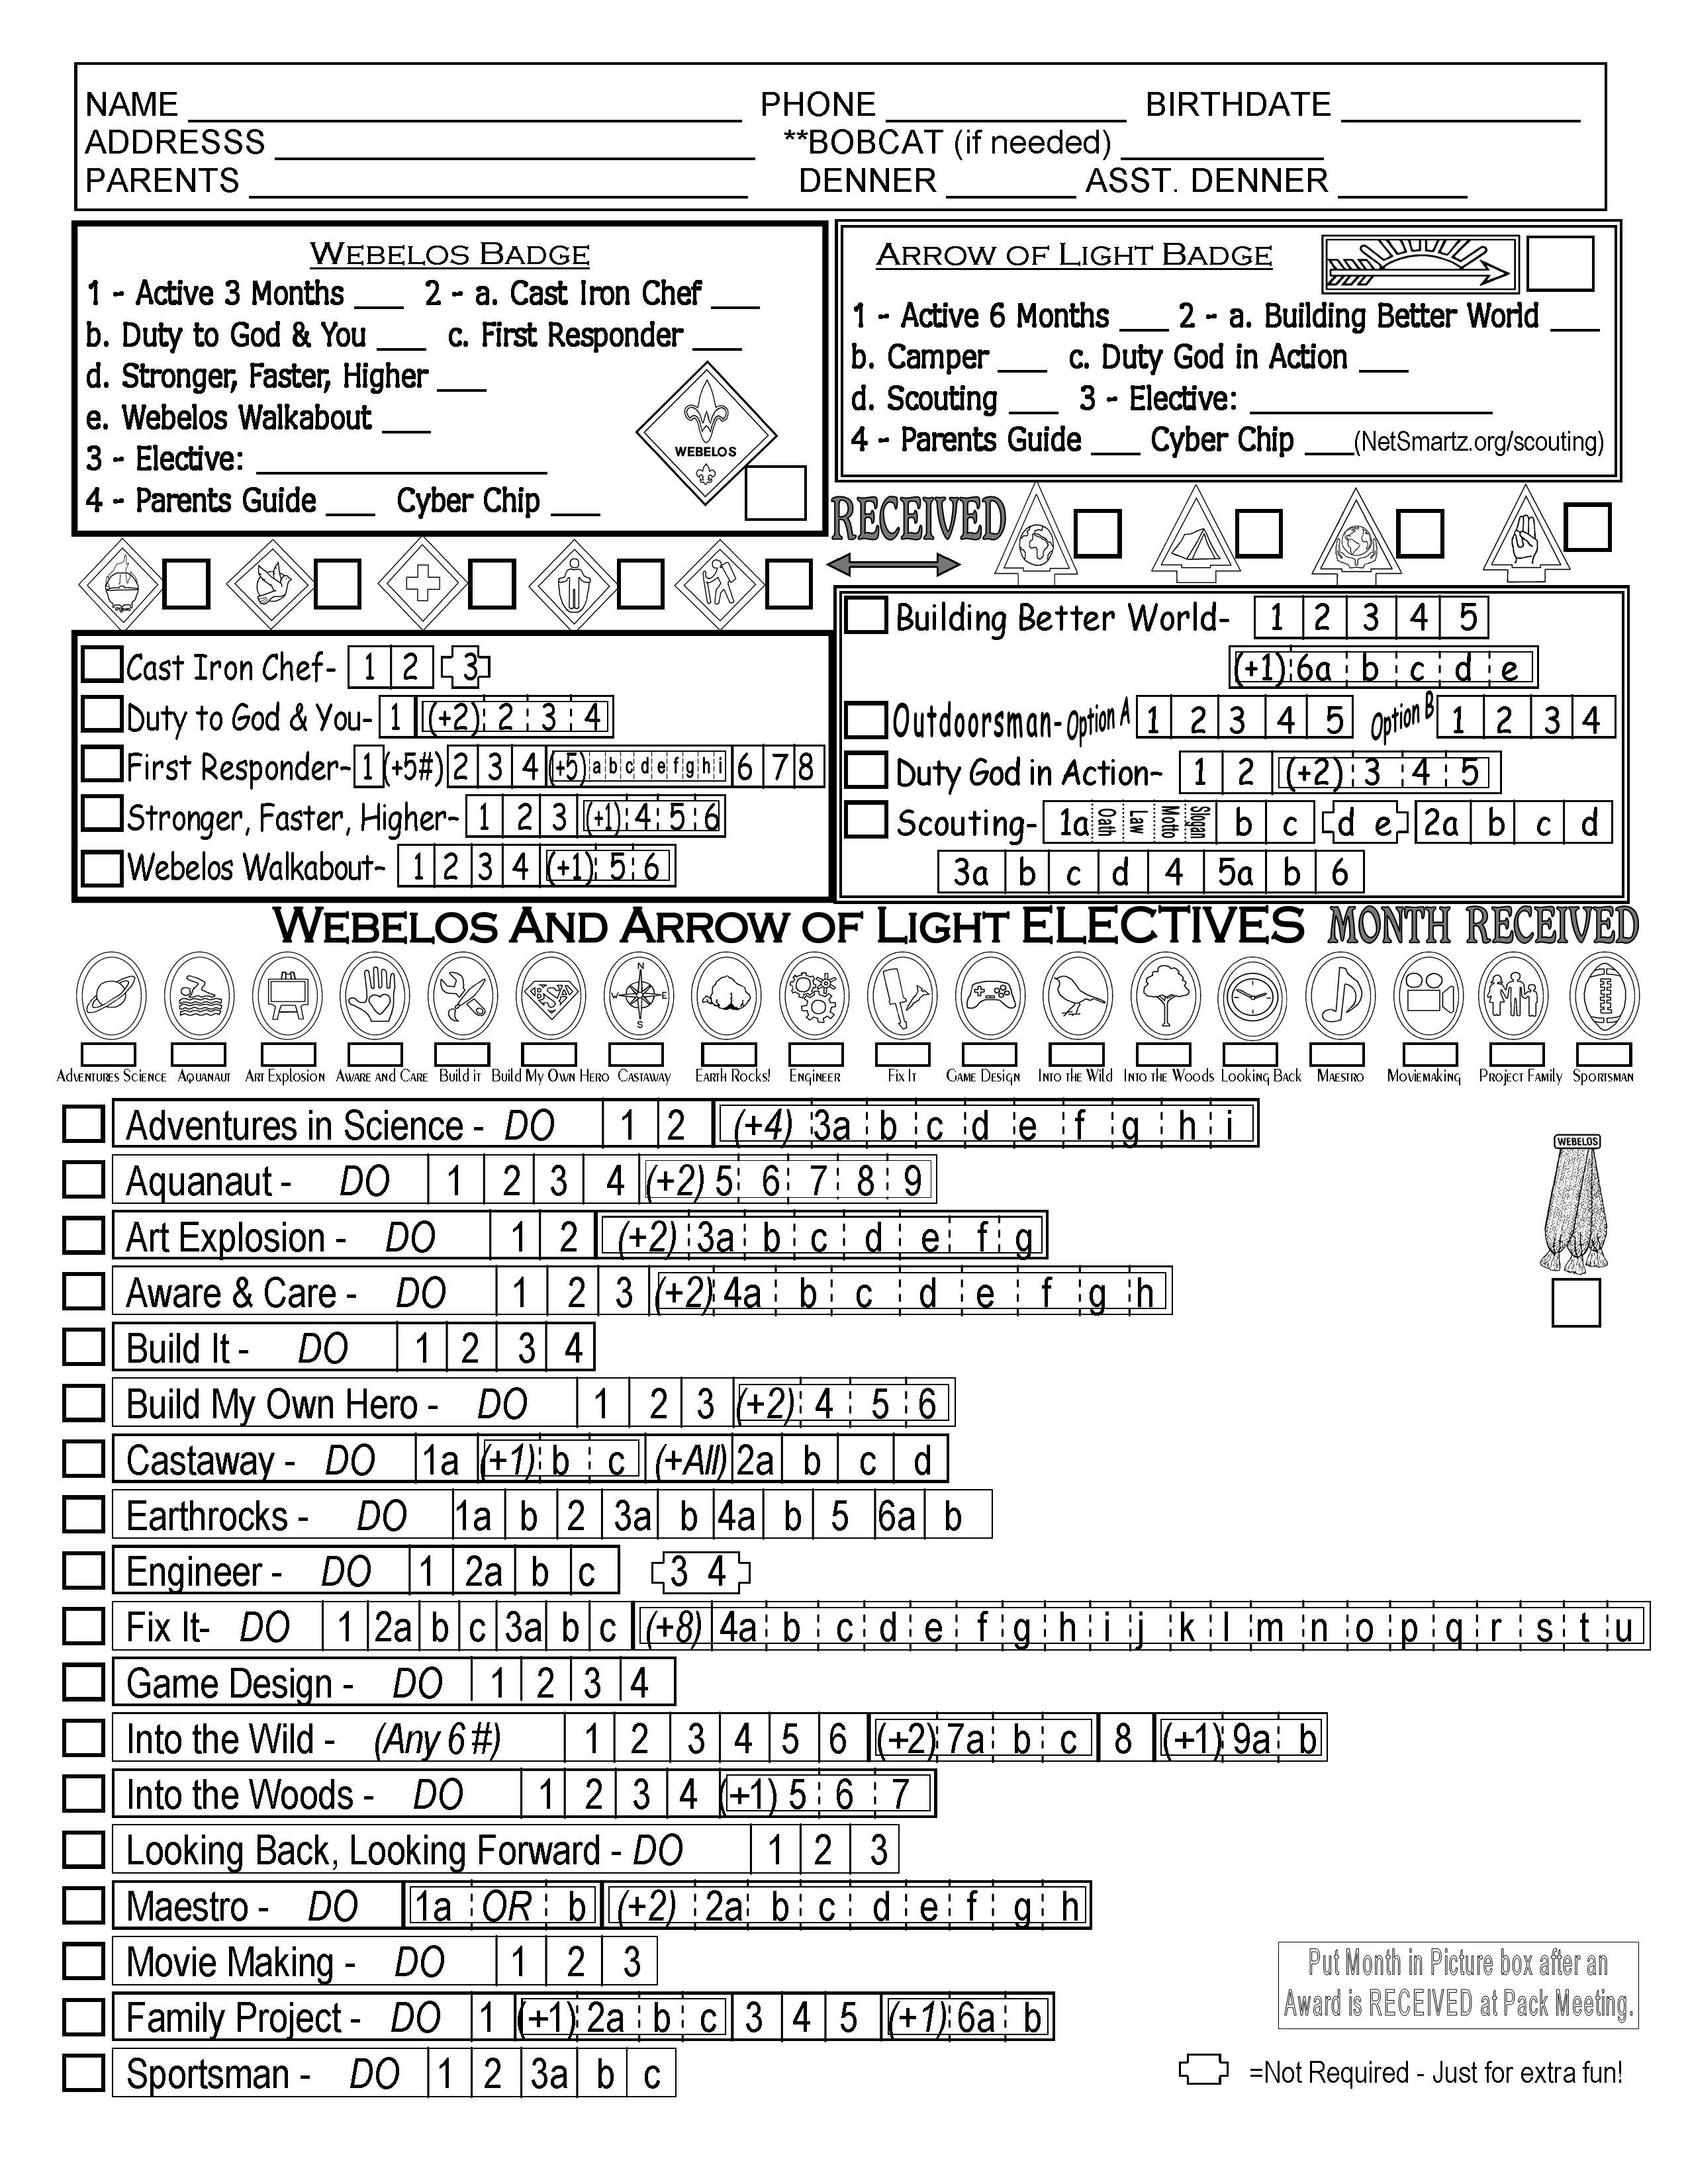 Cub Scout Webelos Tracking Sheet With The New Modified